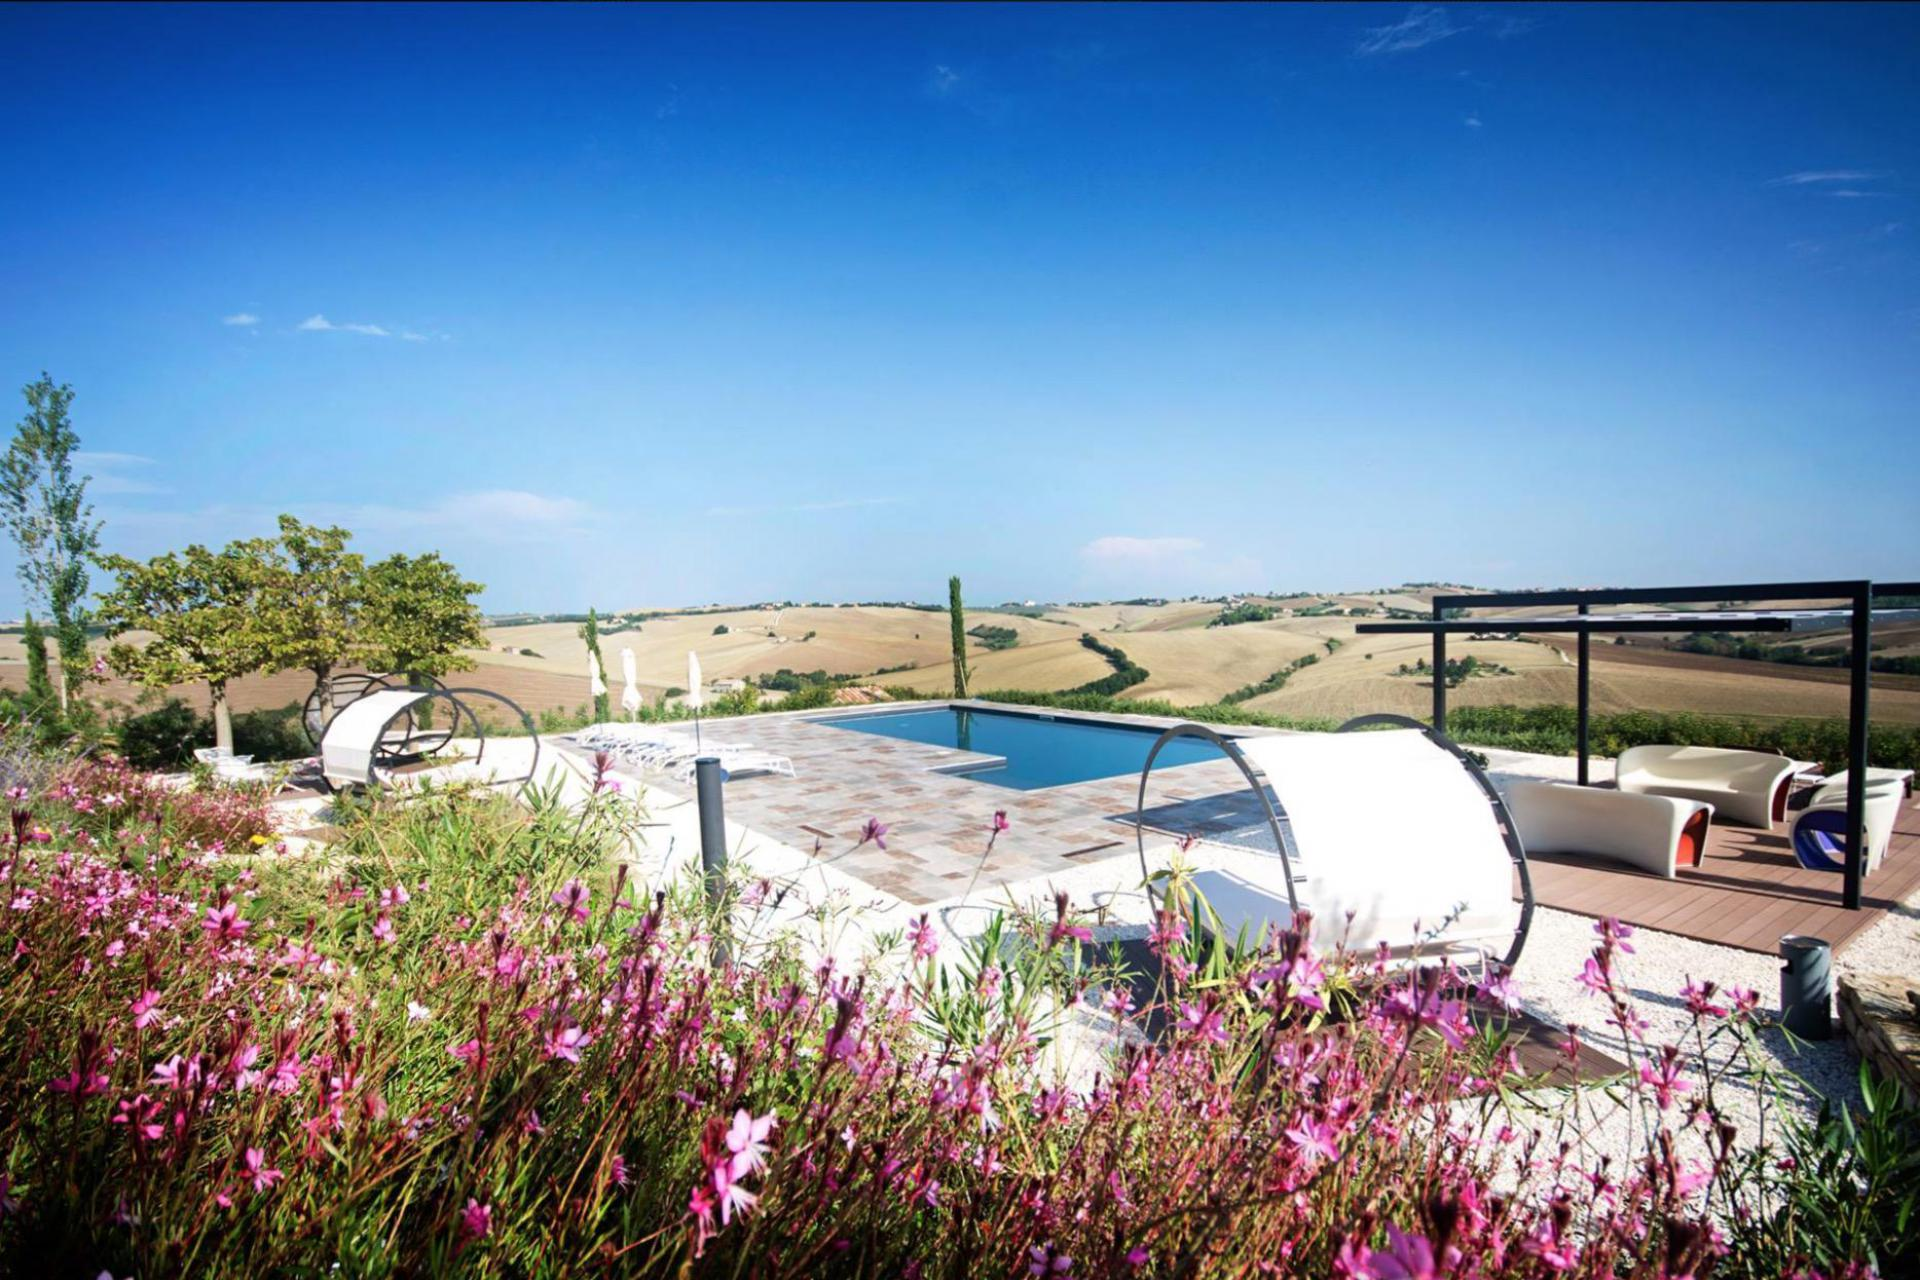 Agriturismo Le Marche Mooi country house in de Marche met bistrot